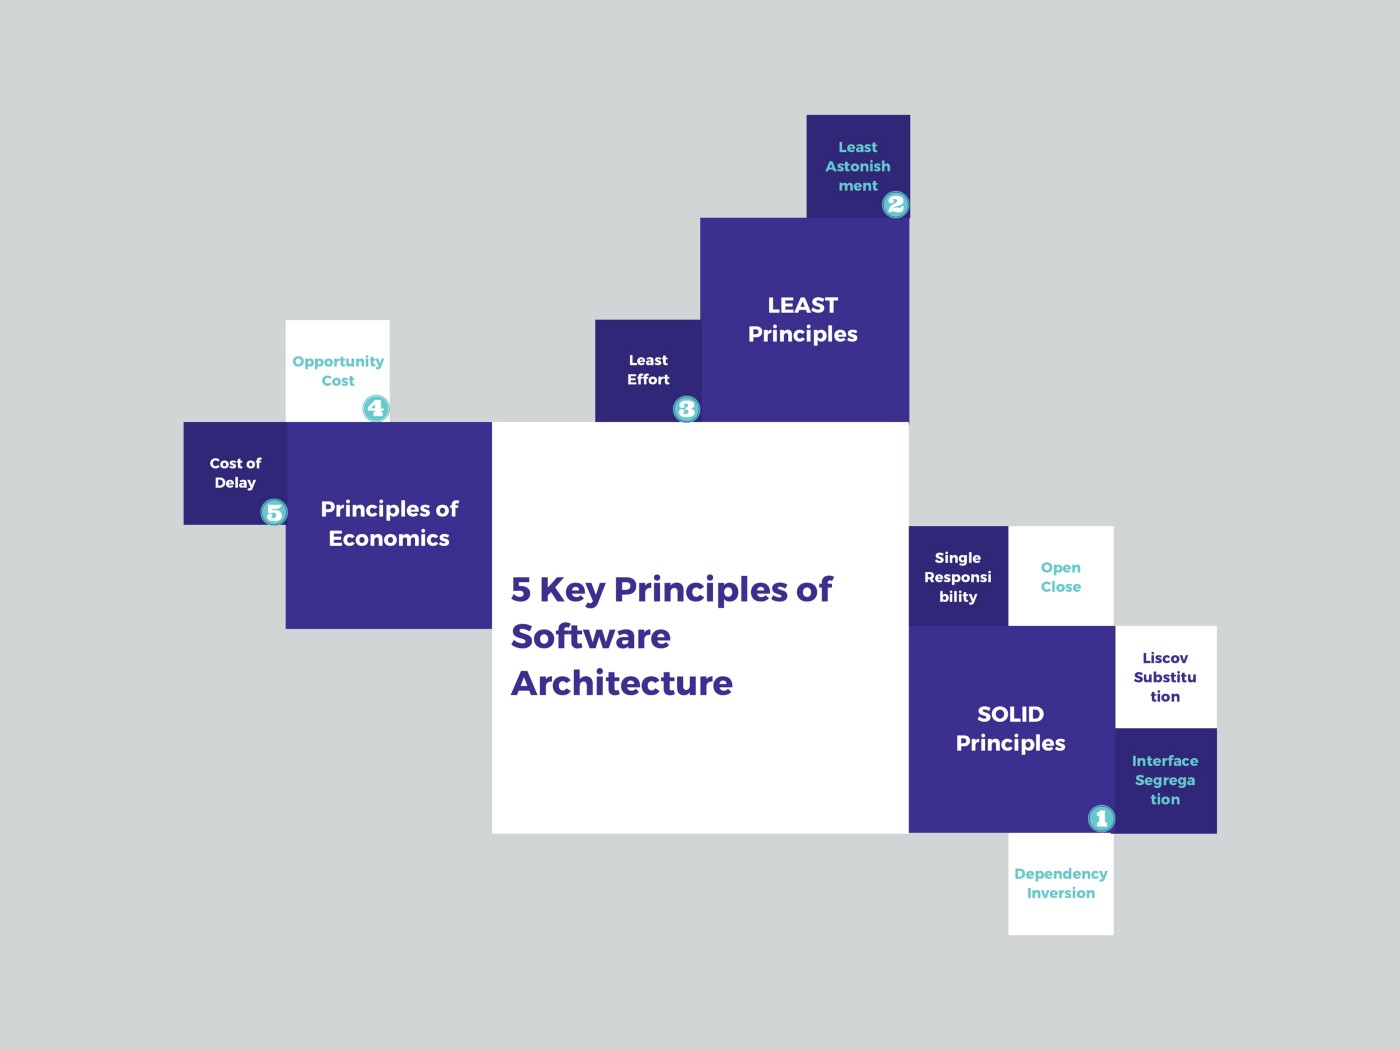 Key Principles of Software Architecture